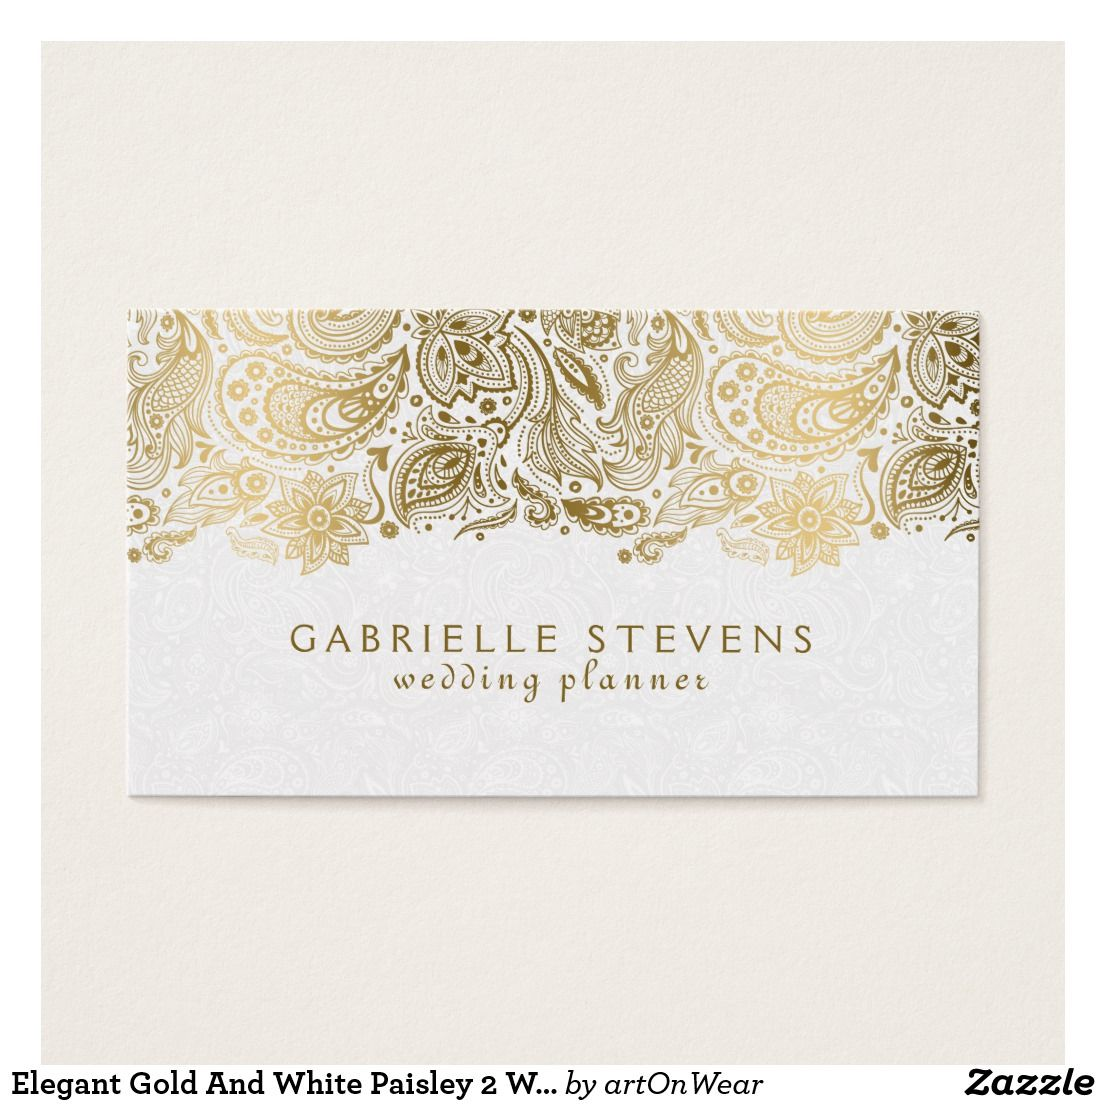 Elegant Gold And White Paisley 2 Wedding Planner Business Card Vintage Fl Lace In Yellow Over Damask Pattern